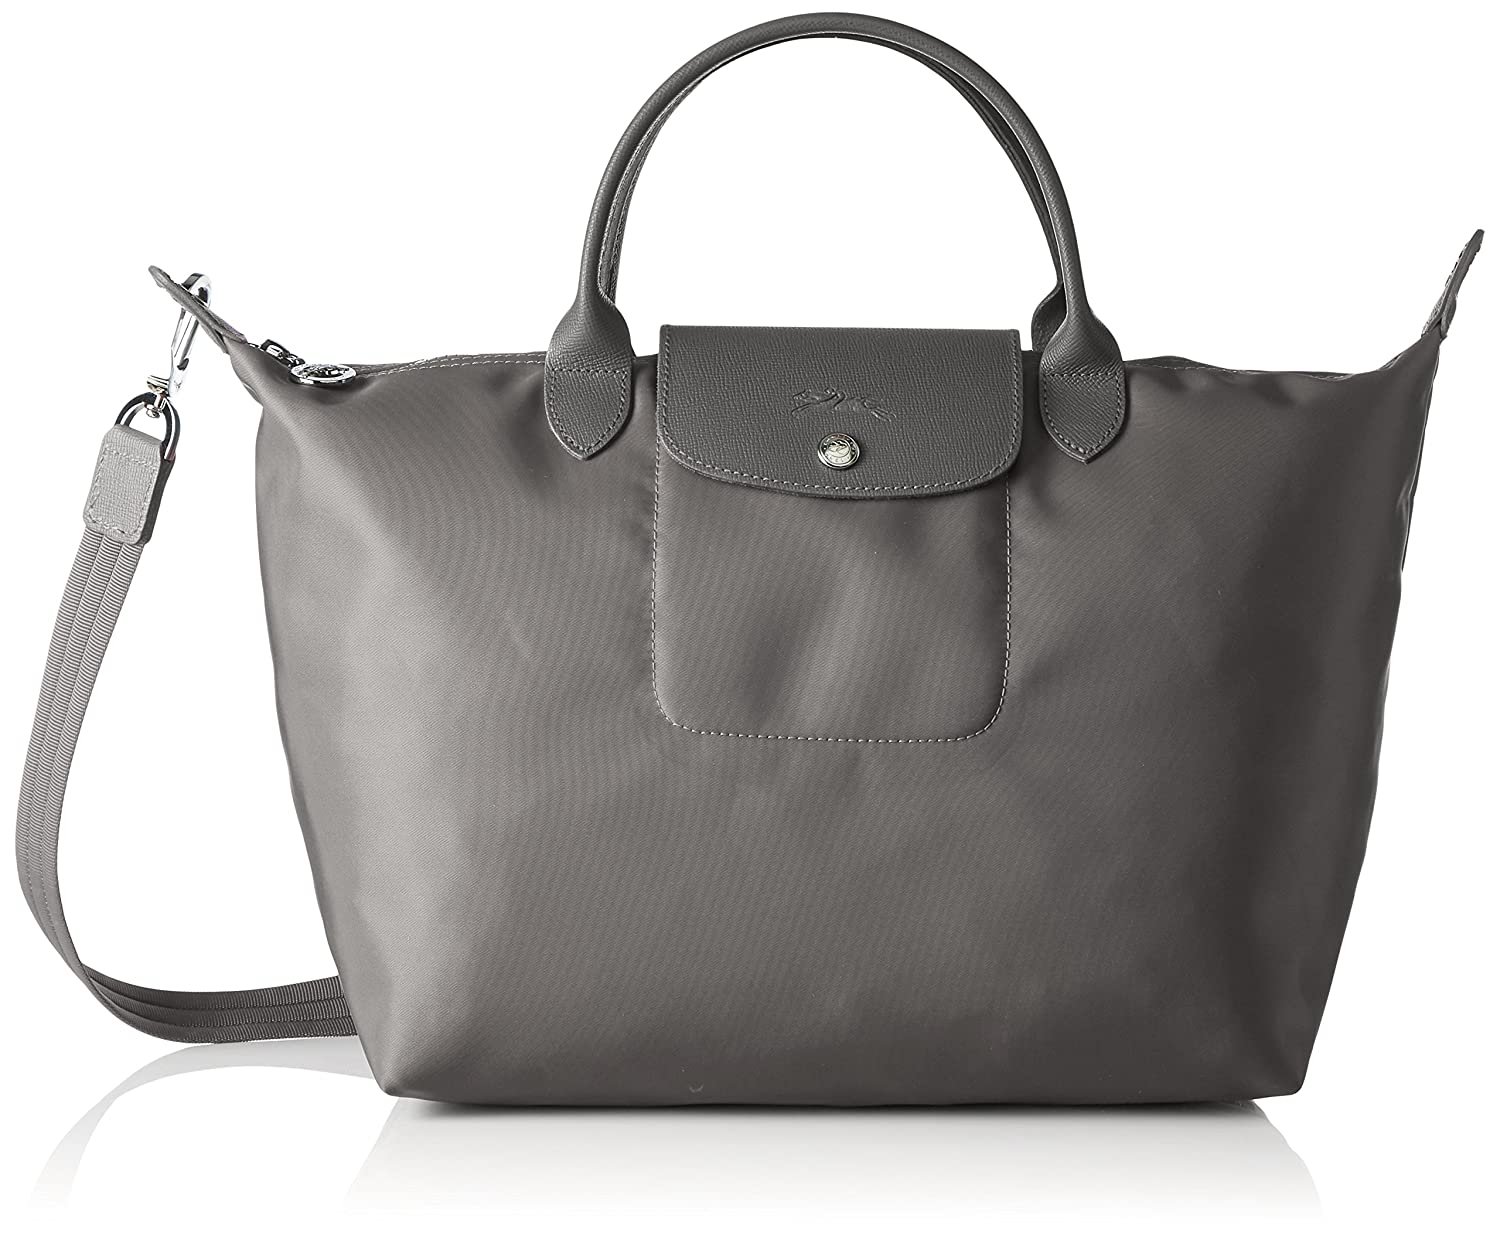 Longchamp Women's Le Pliage Neo Handbag: Amazon.co.uk: Shoes